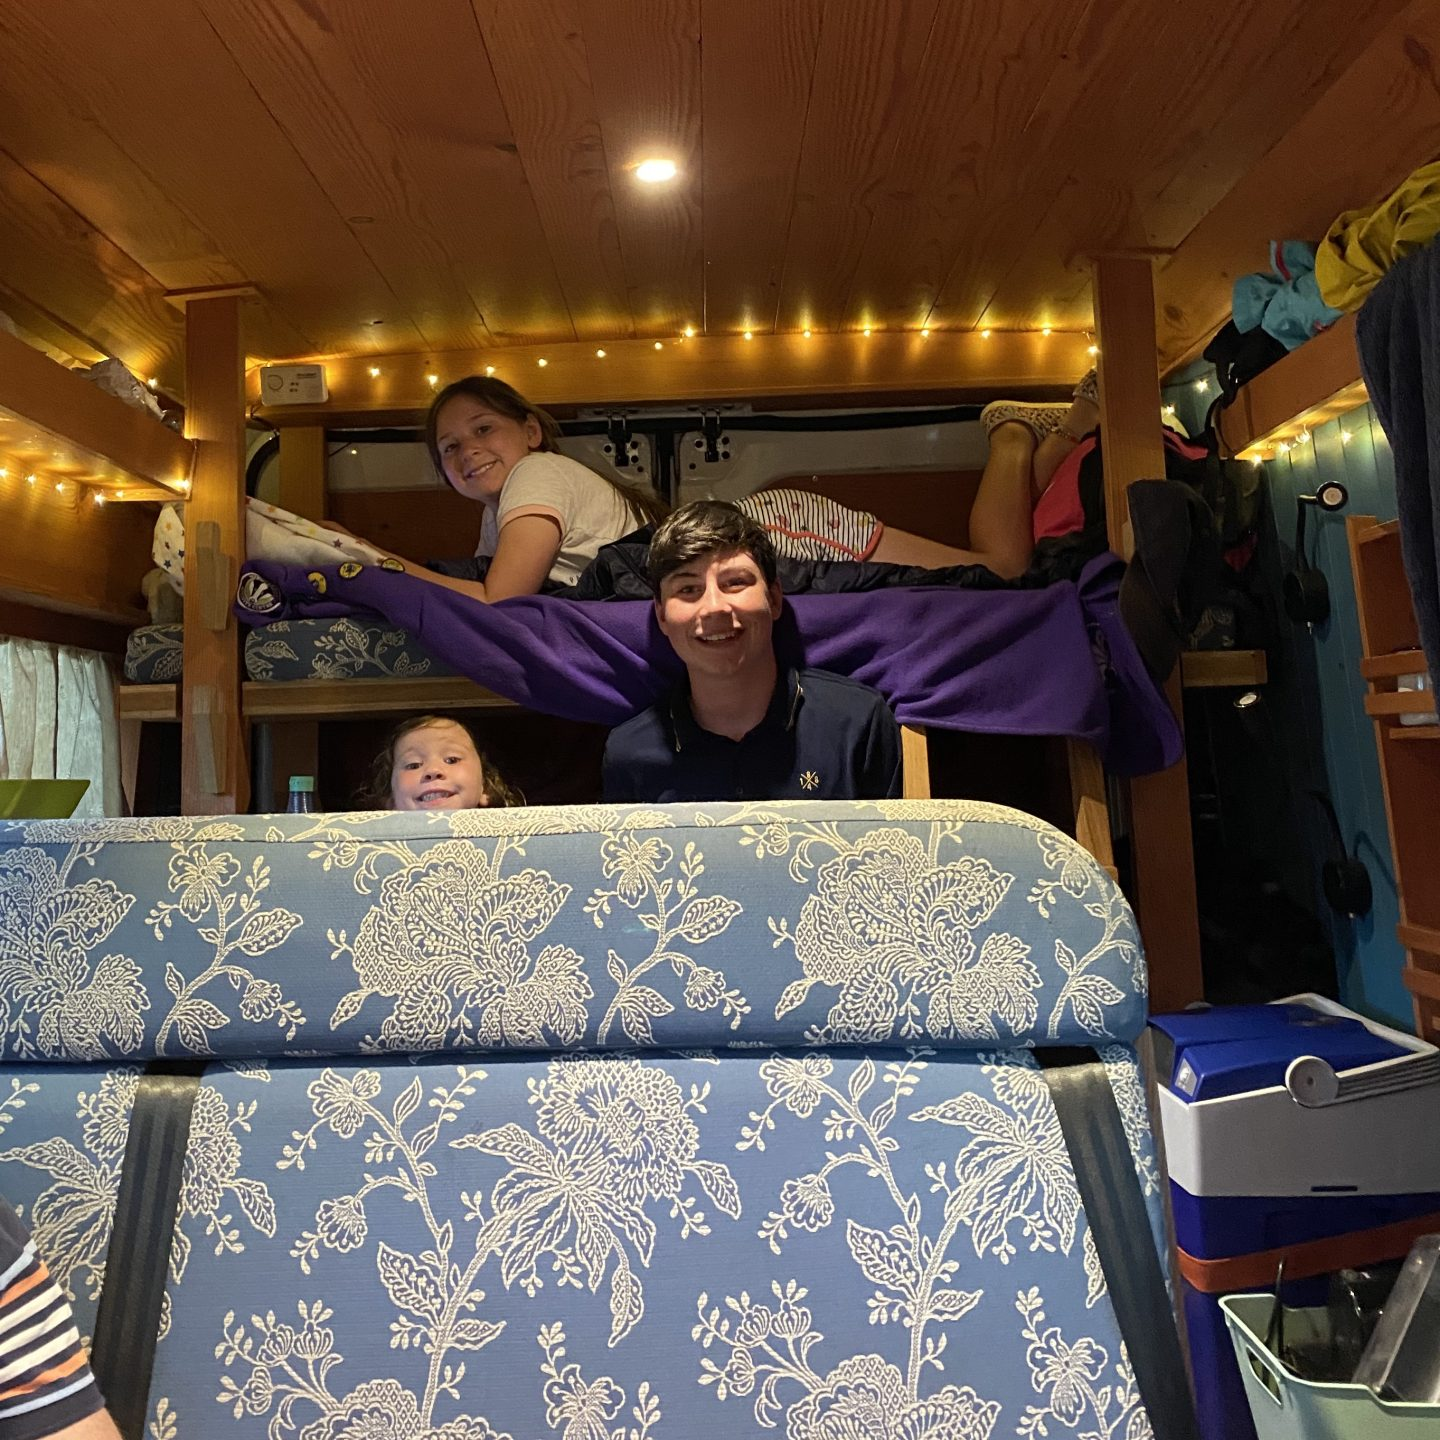 Inside a camper van with 3 children smiling